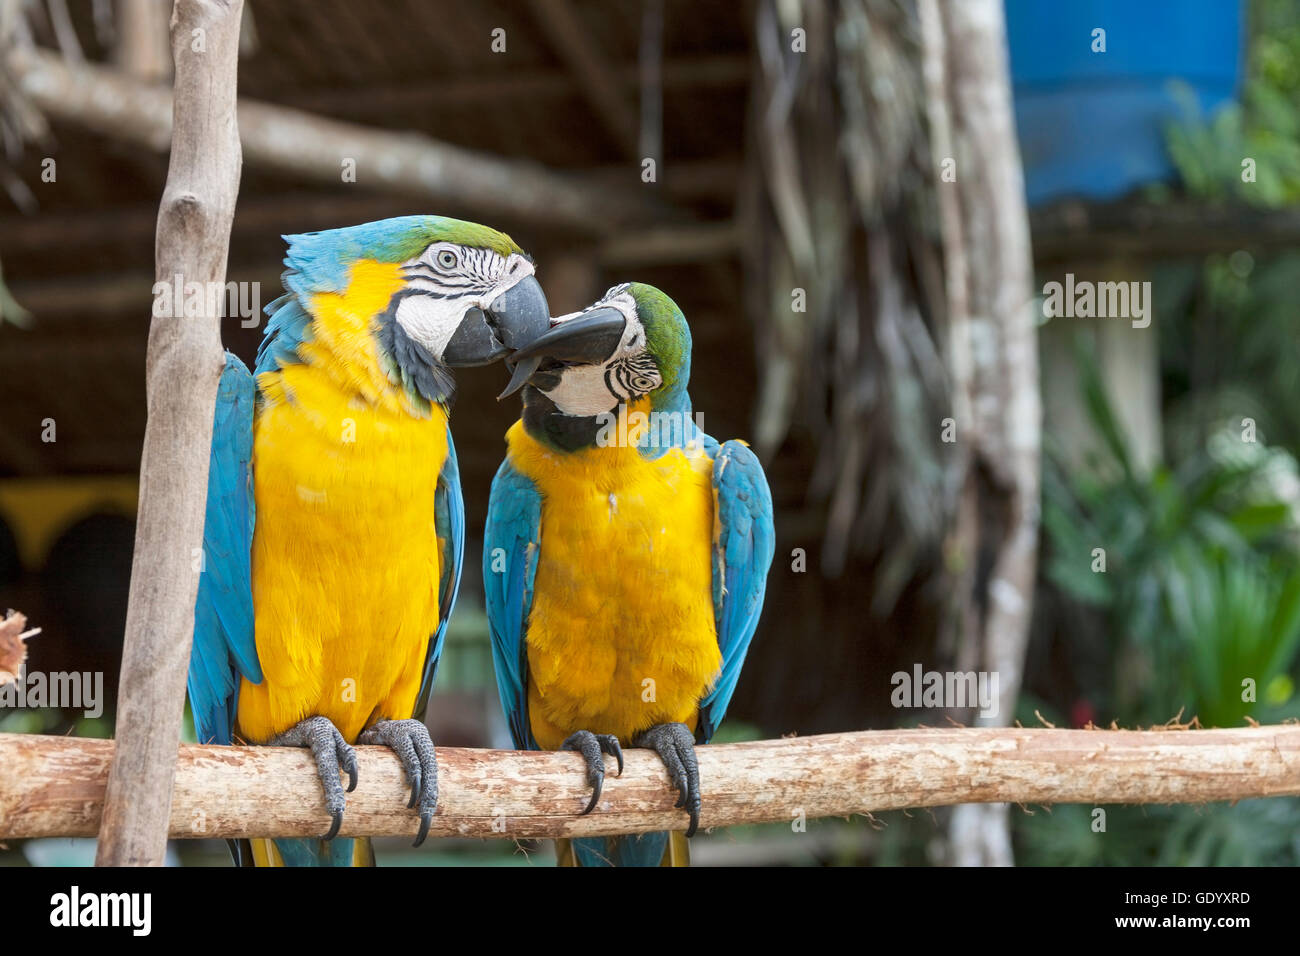 Two Gold and Blue Macaws (Ara ararauna) mating with love kiss, Orinoco Delta, Venezuela - Stock Image